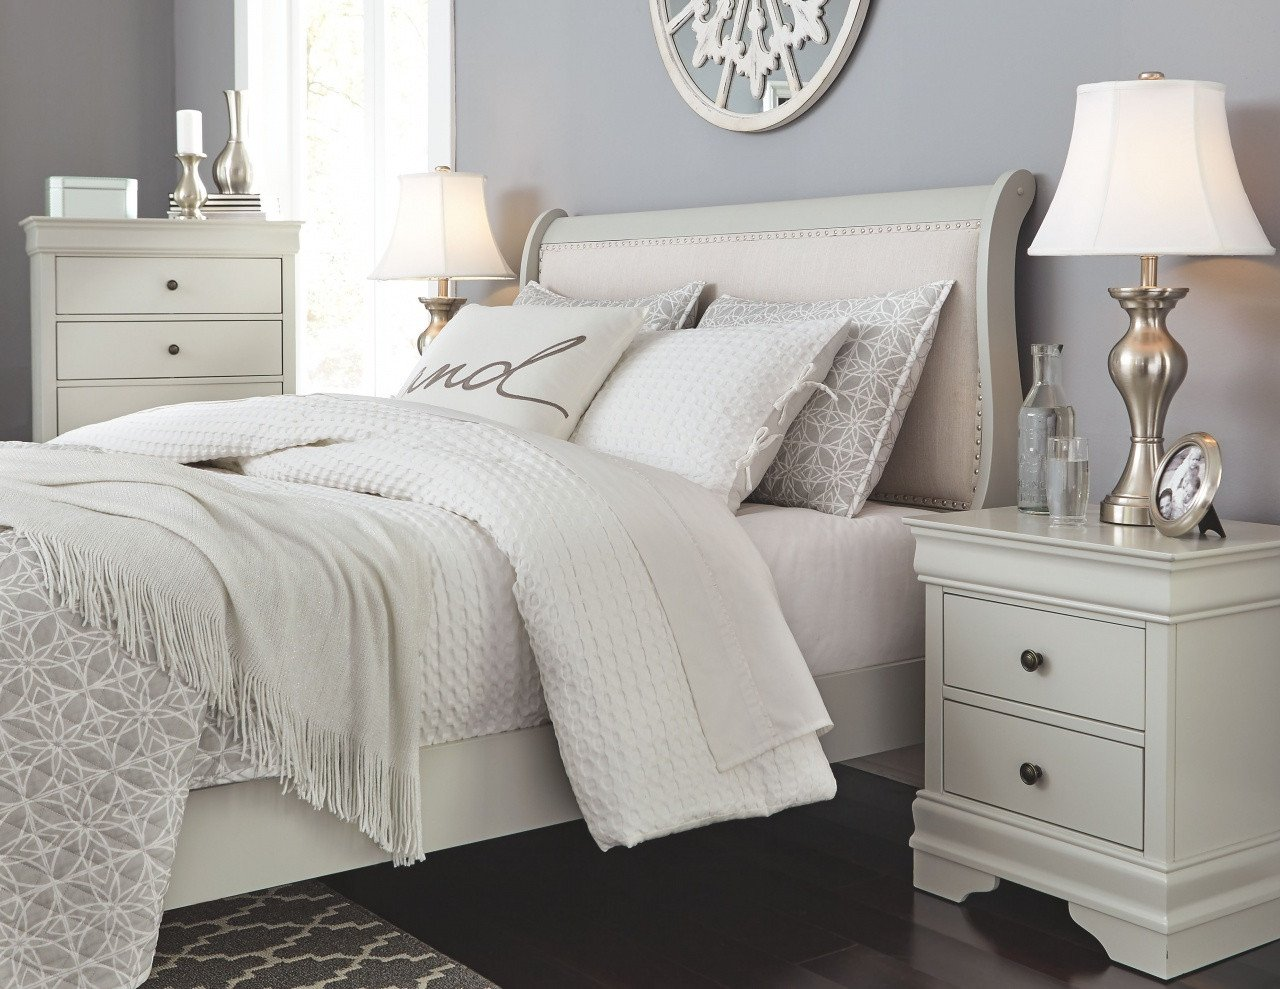 Gray and Gold Bedroom Awesome Grey and Gold Bedroom Ideas – Bunk Bed Ideas